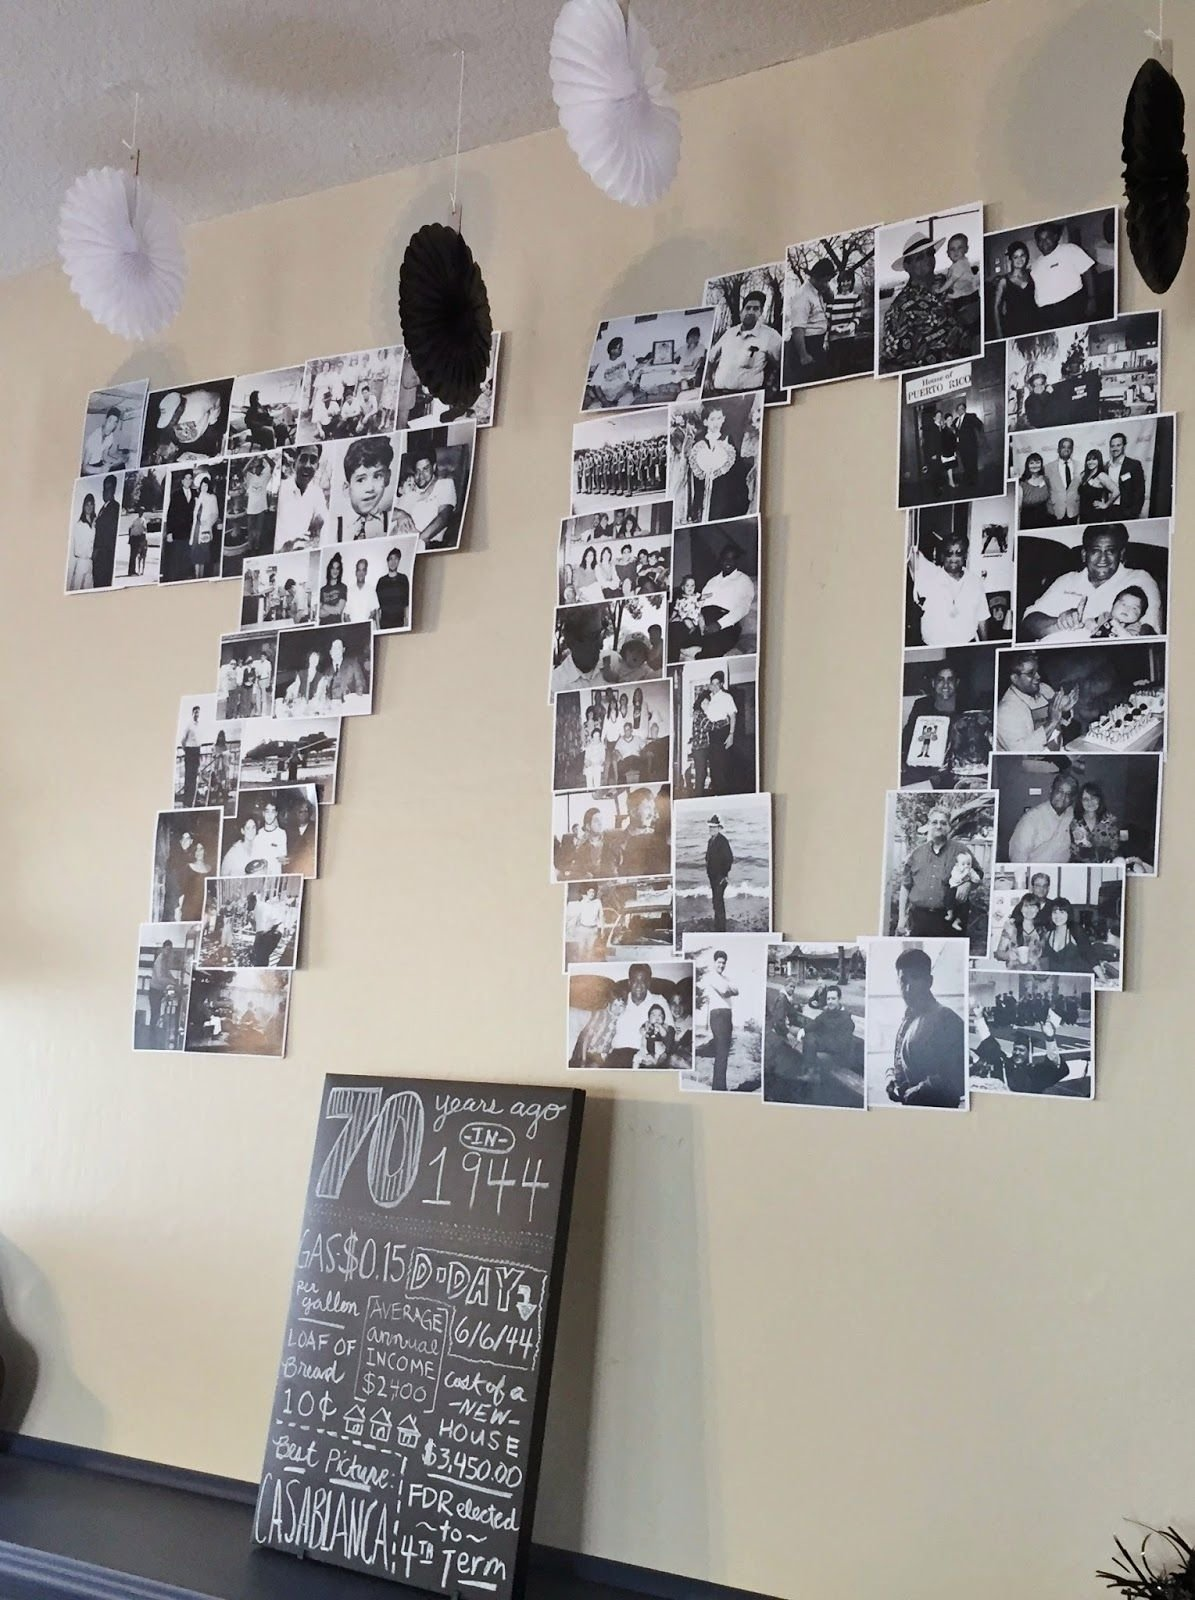 10 Great Surprise 70Th Birthday Party Ideas milestone birthday planning my dads 70th birthday party big 4